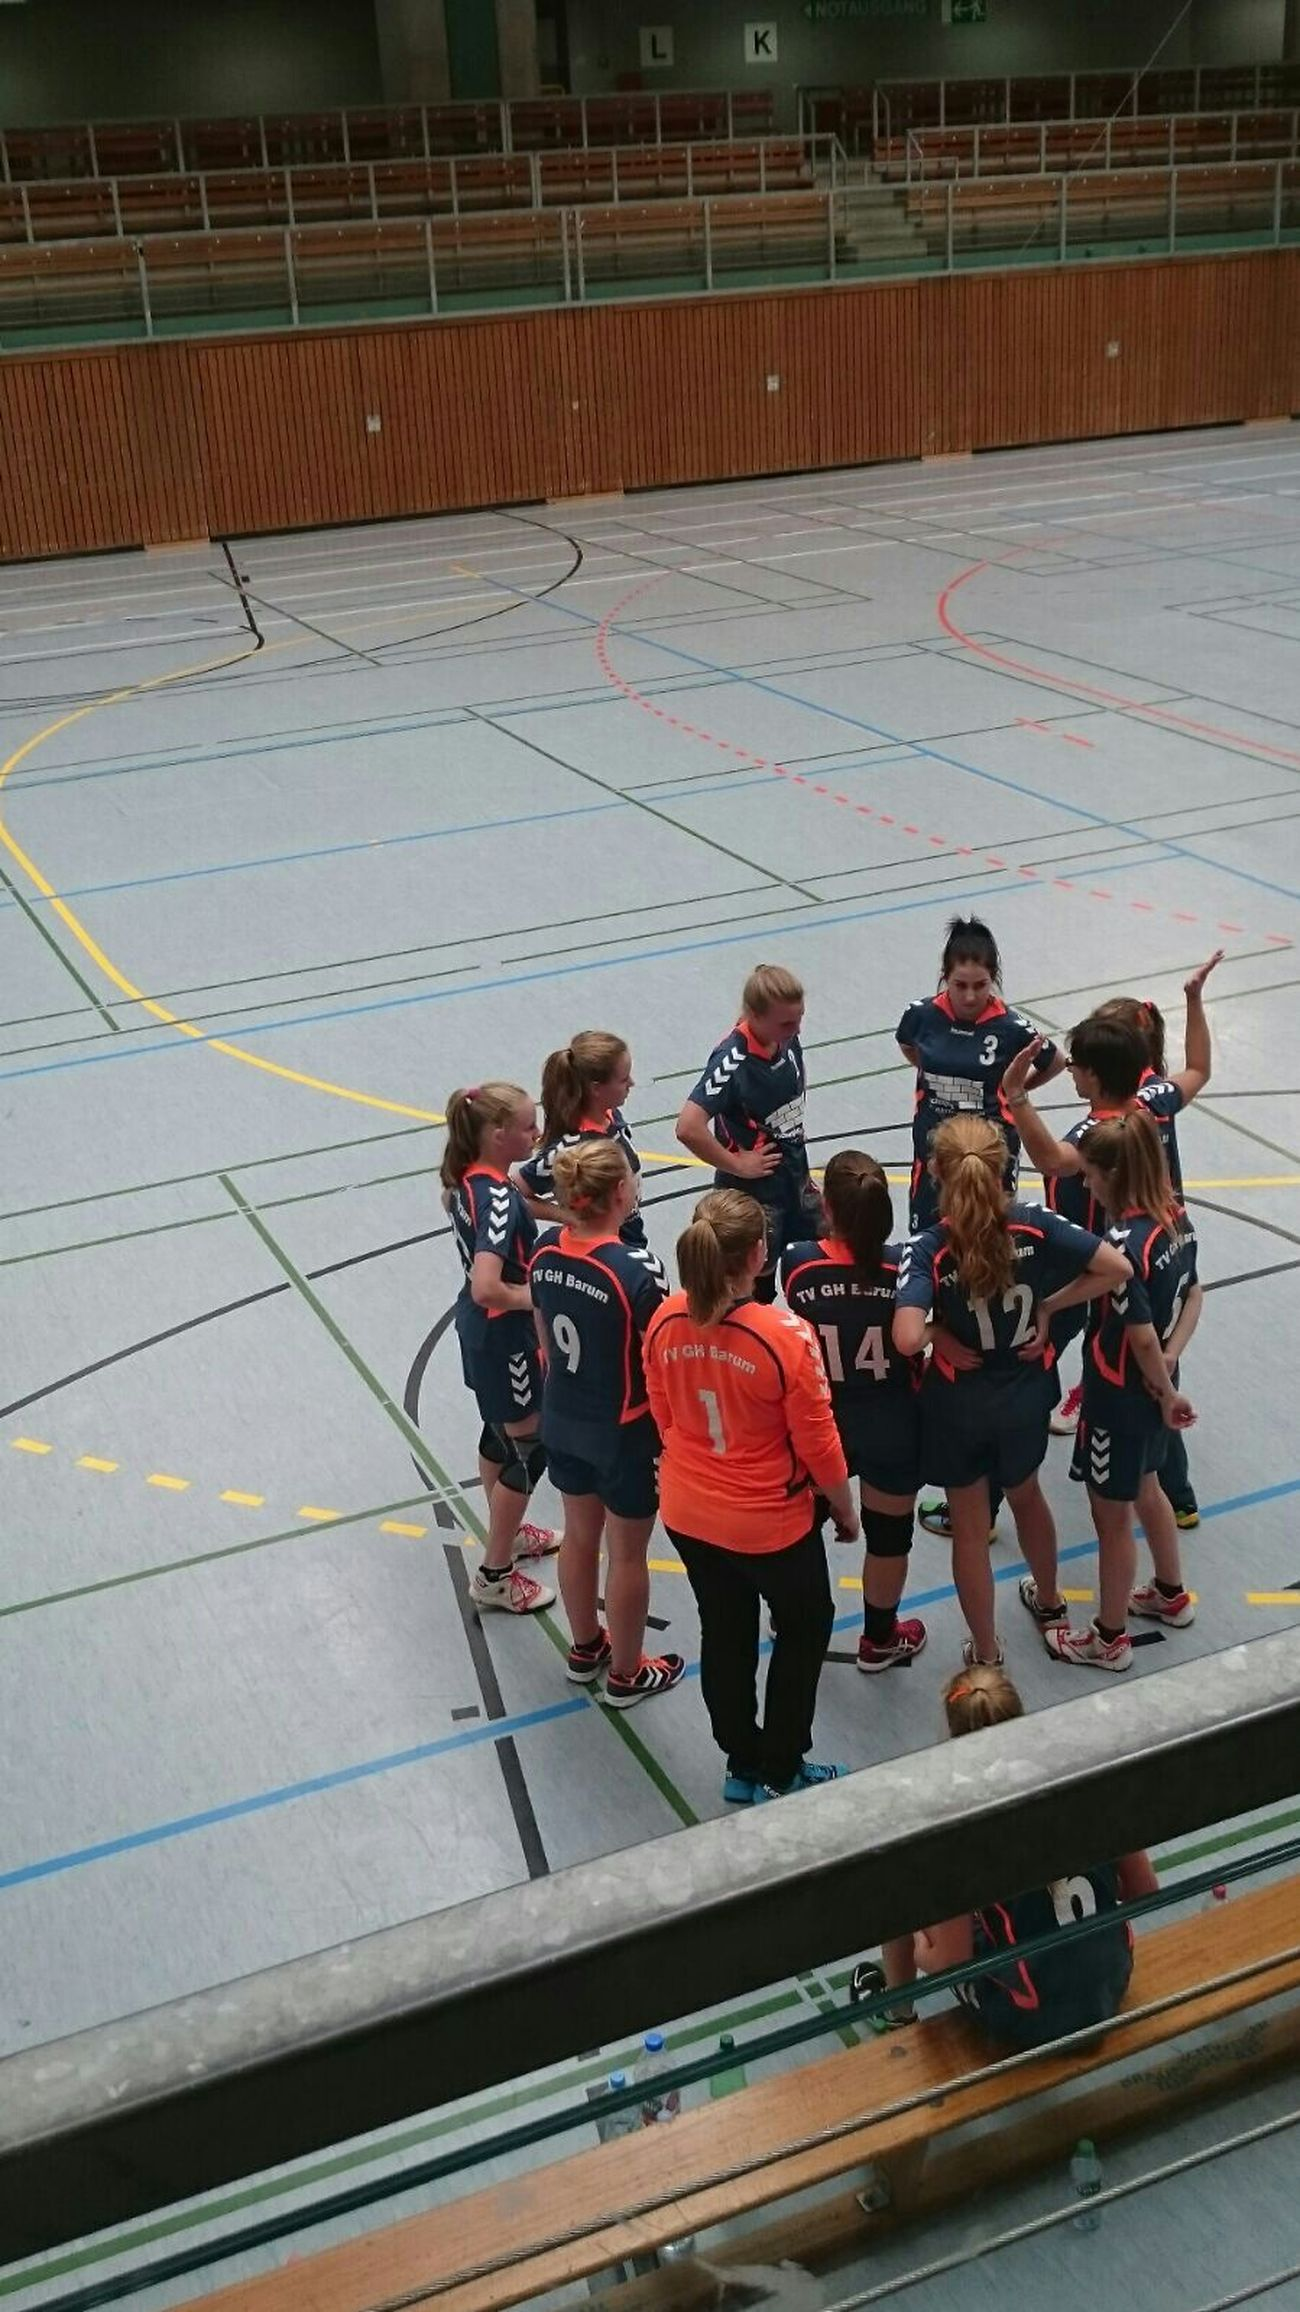 Bestfriend Picoftheday People Taking Pictures Memories Liebe Taking Photos Barum Sieg Handball